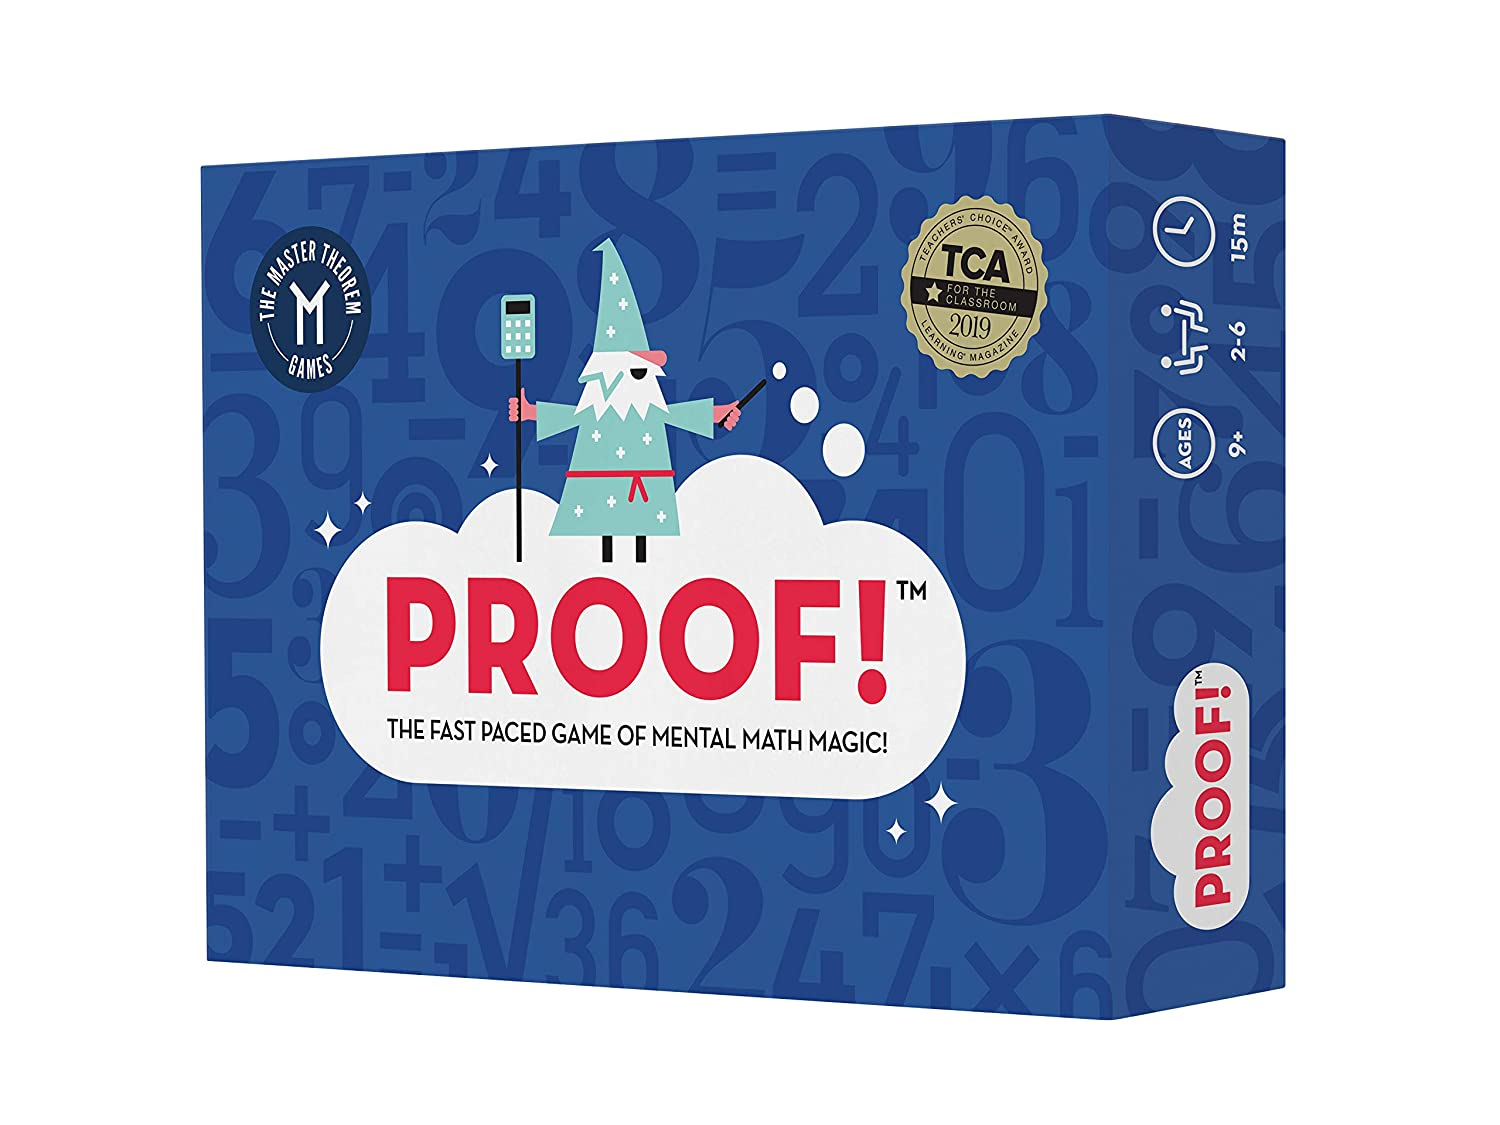 Proof! - The Game of Mental Math Magic